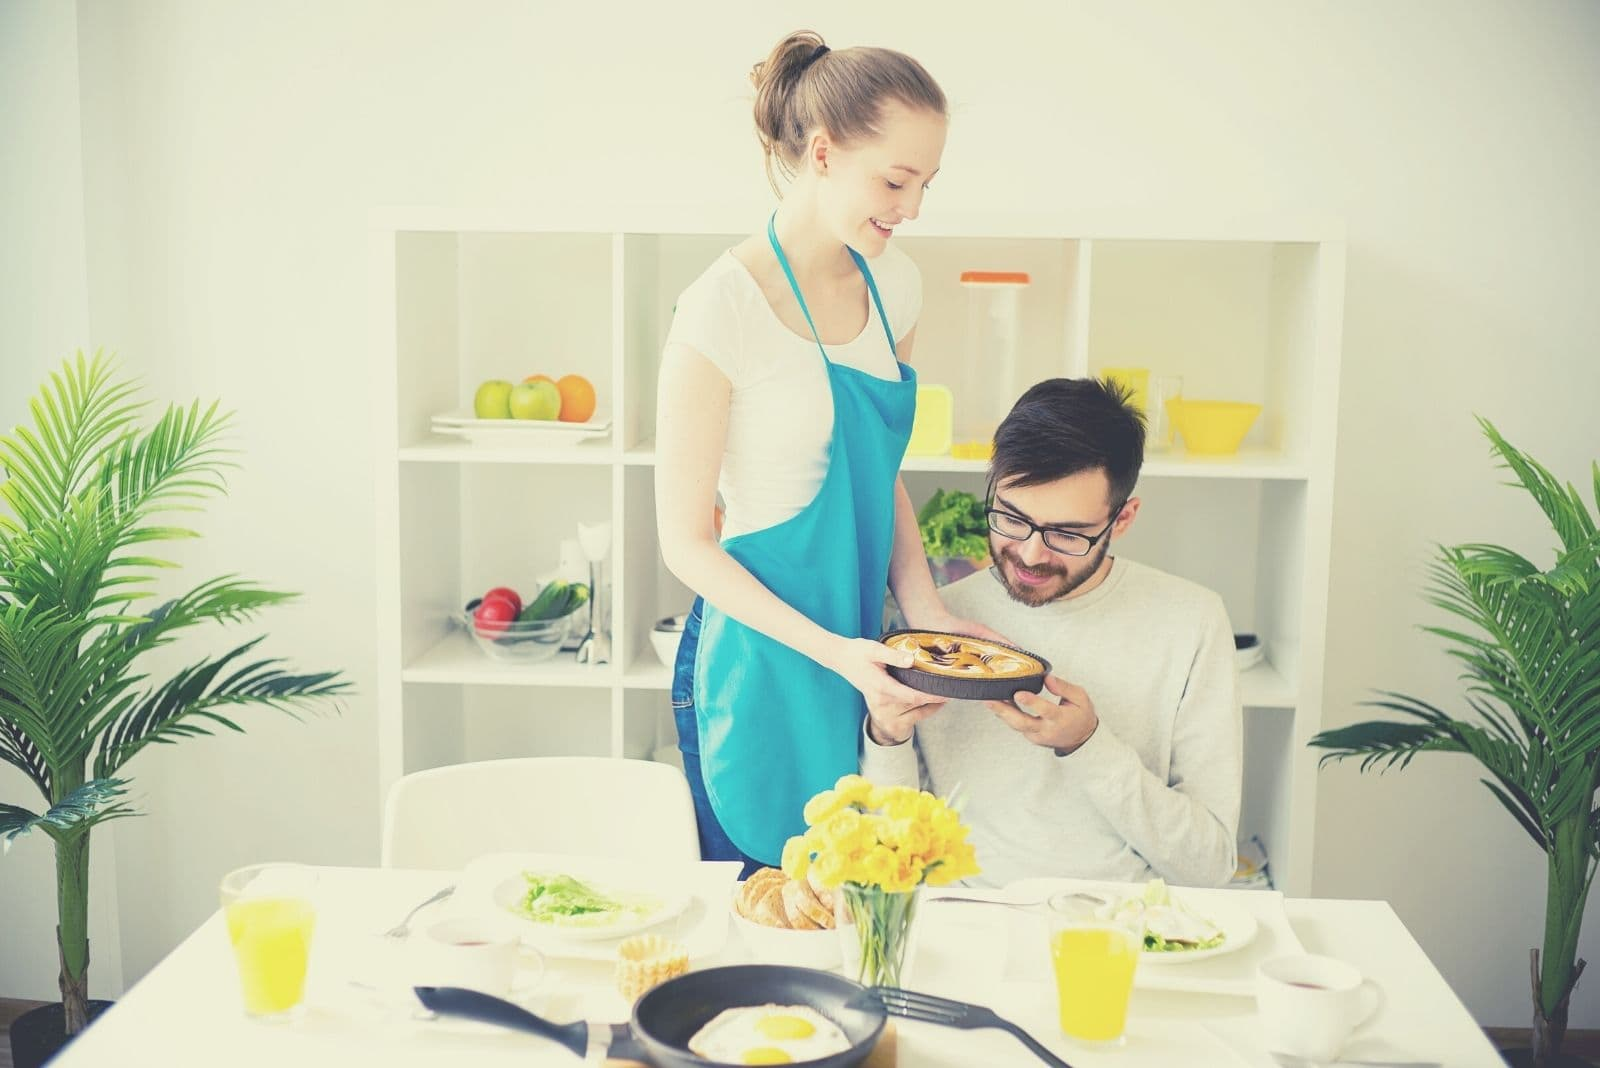 young wife serving food to her husband in the dining room